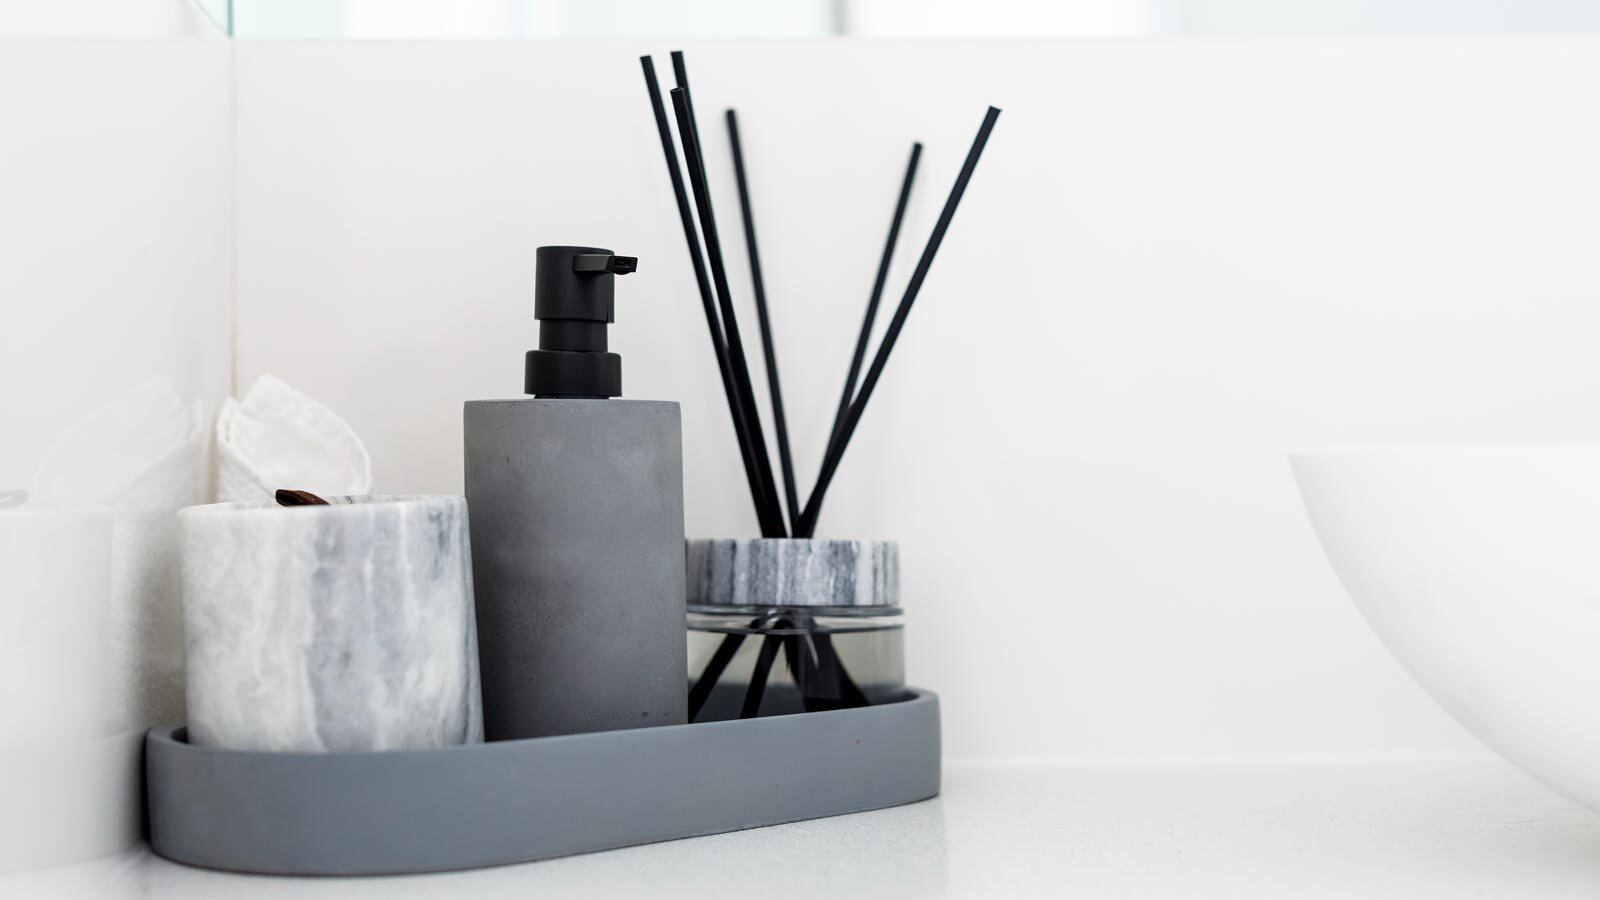 A marble and grey bathroom accessory set featuring a cup, lotion dispenser and oil diffuser